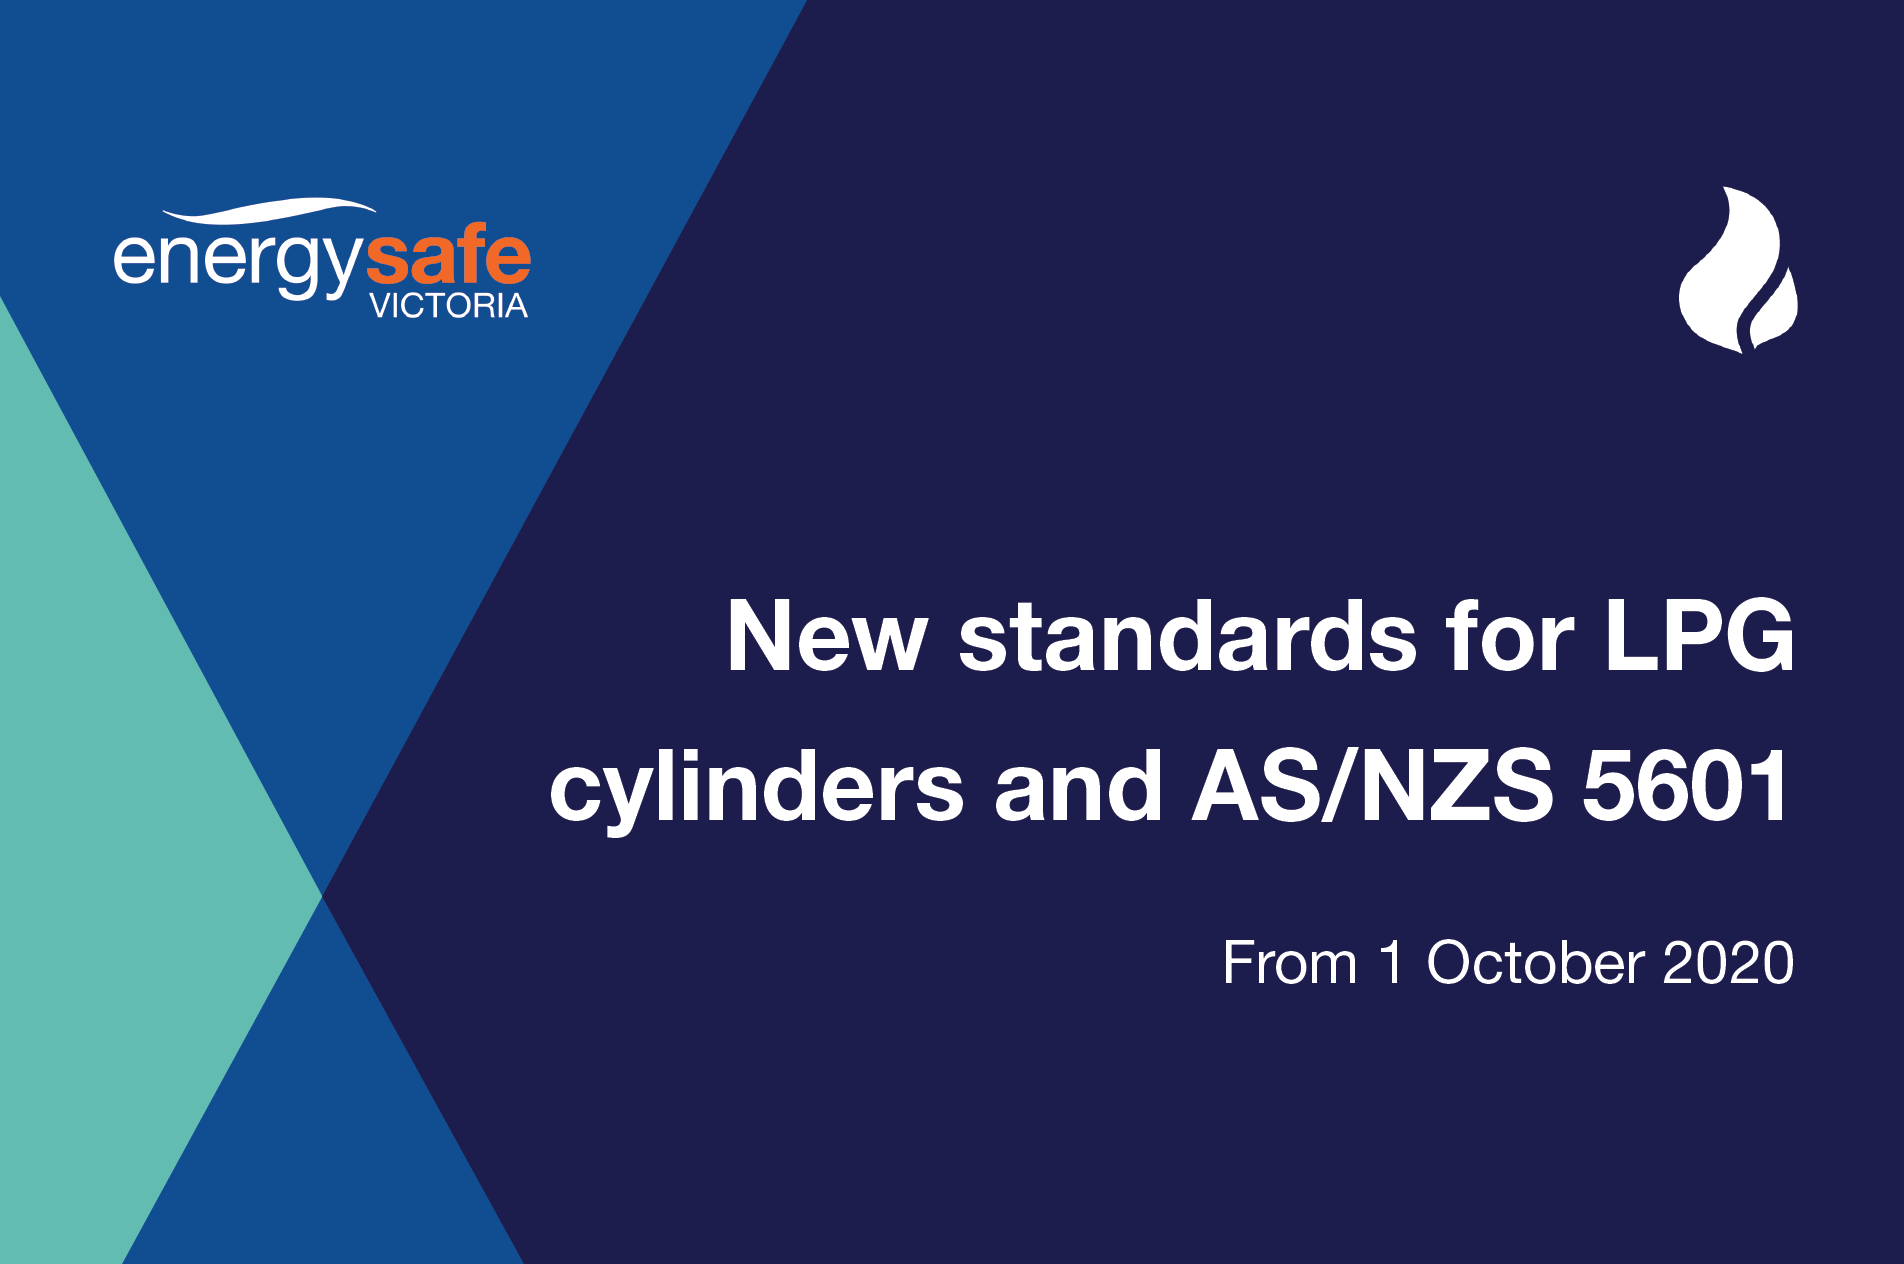 News item - New standards for LPG cylinder valves and AS/NZS5601